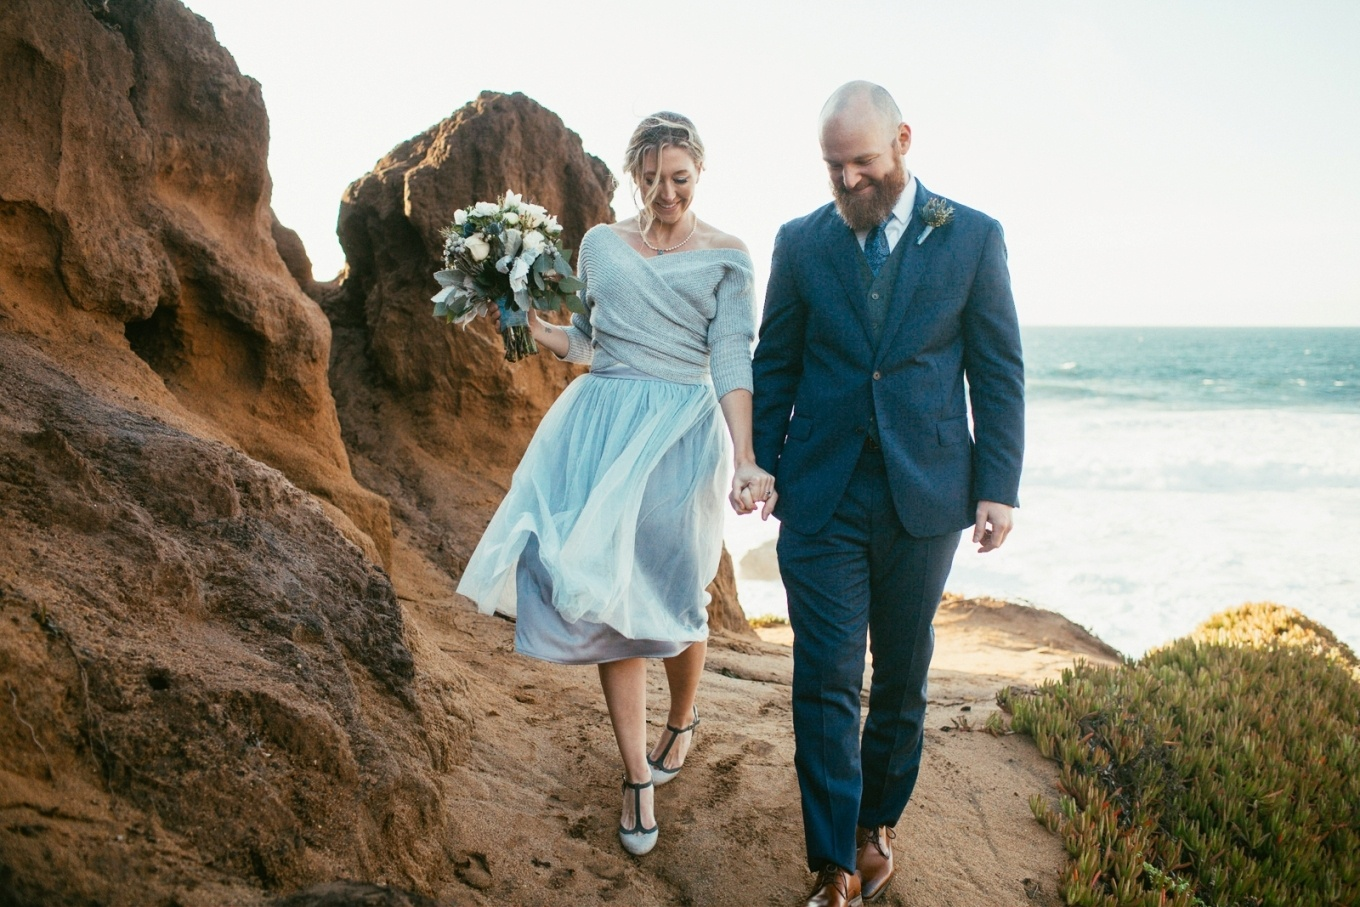 walking on the beach after their elopement ceremony